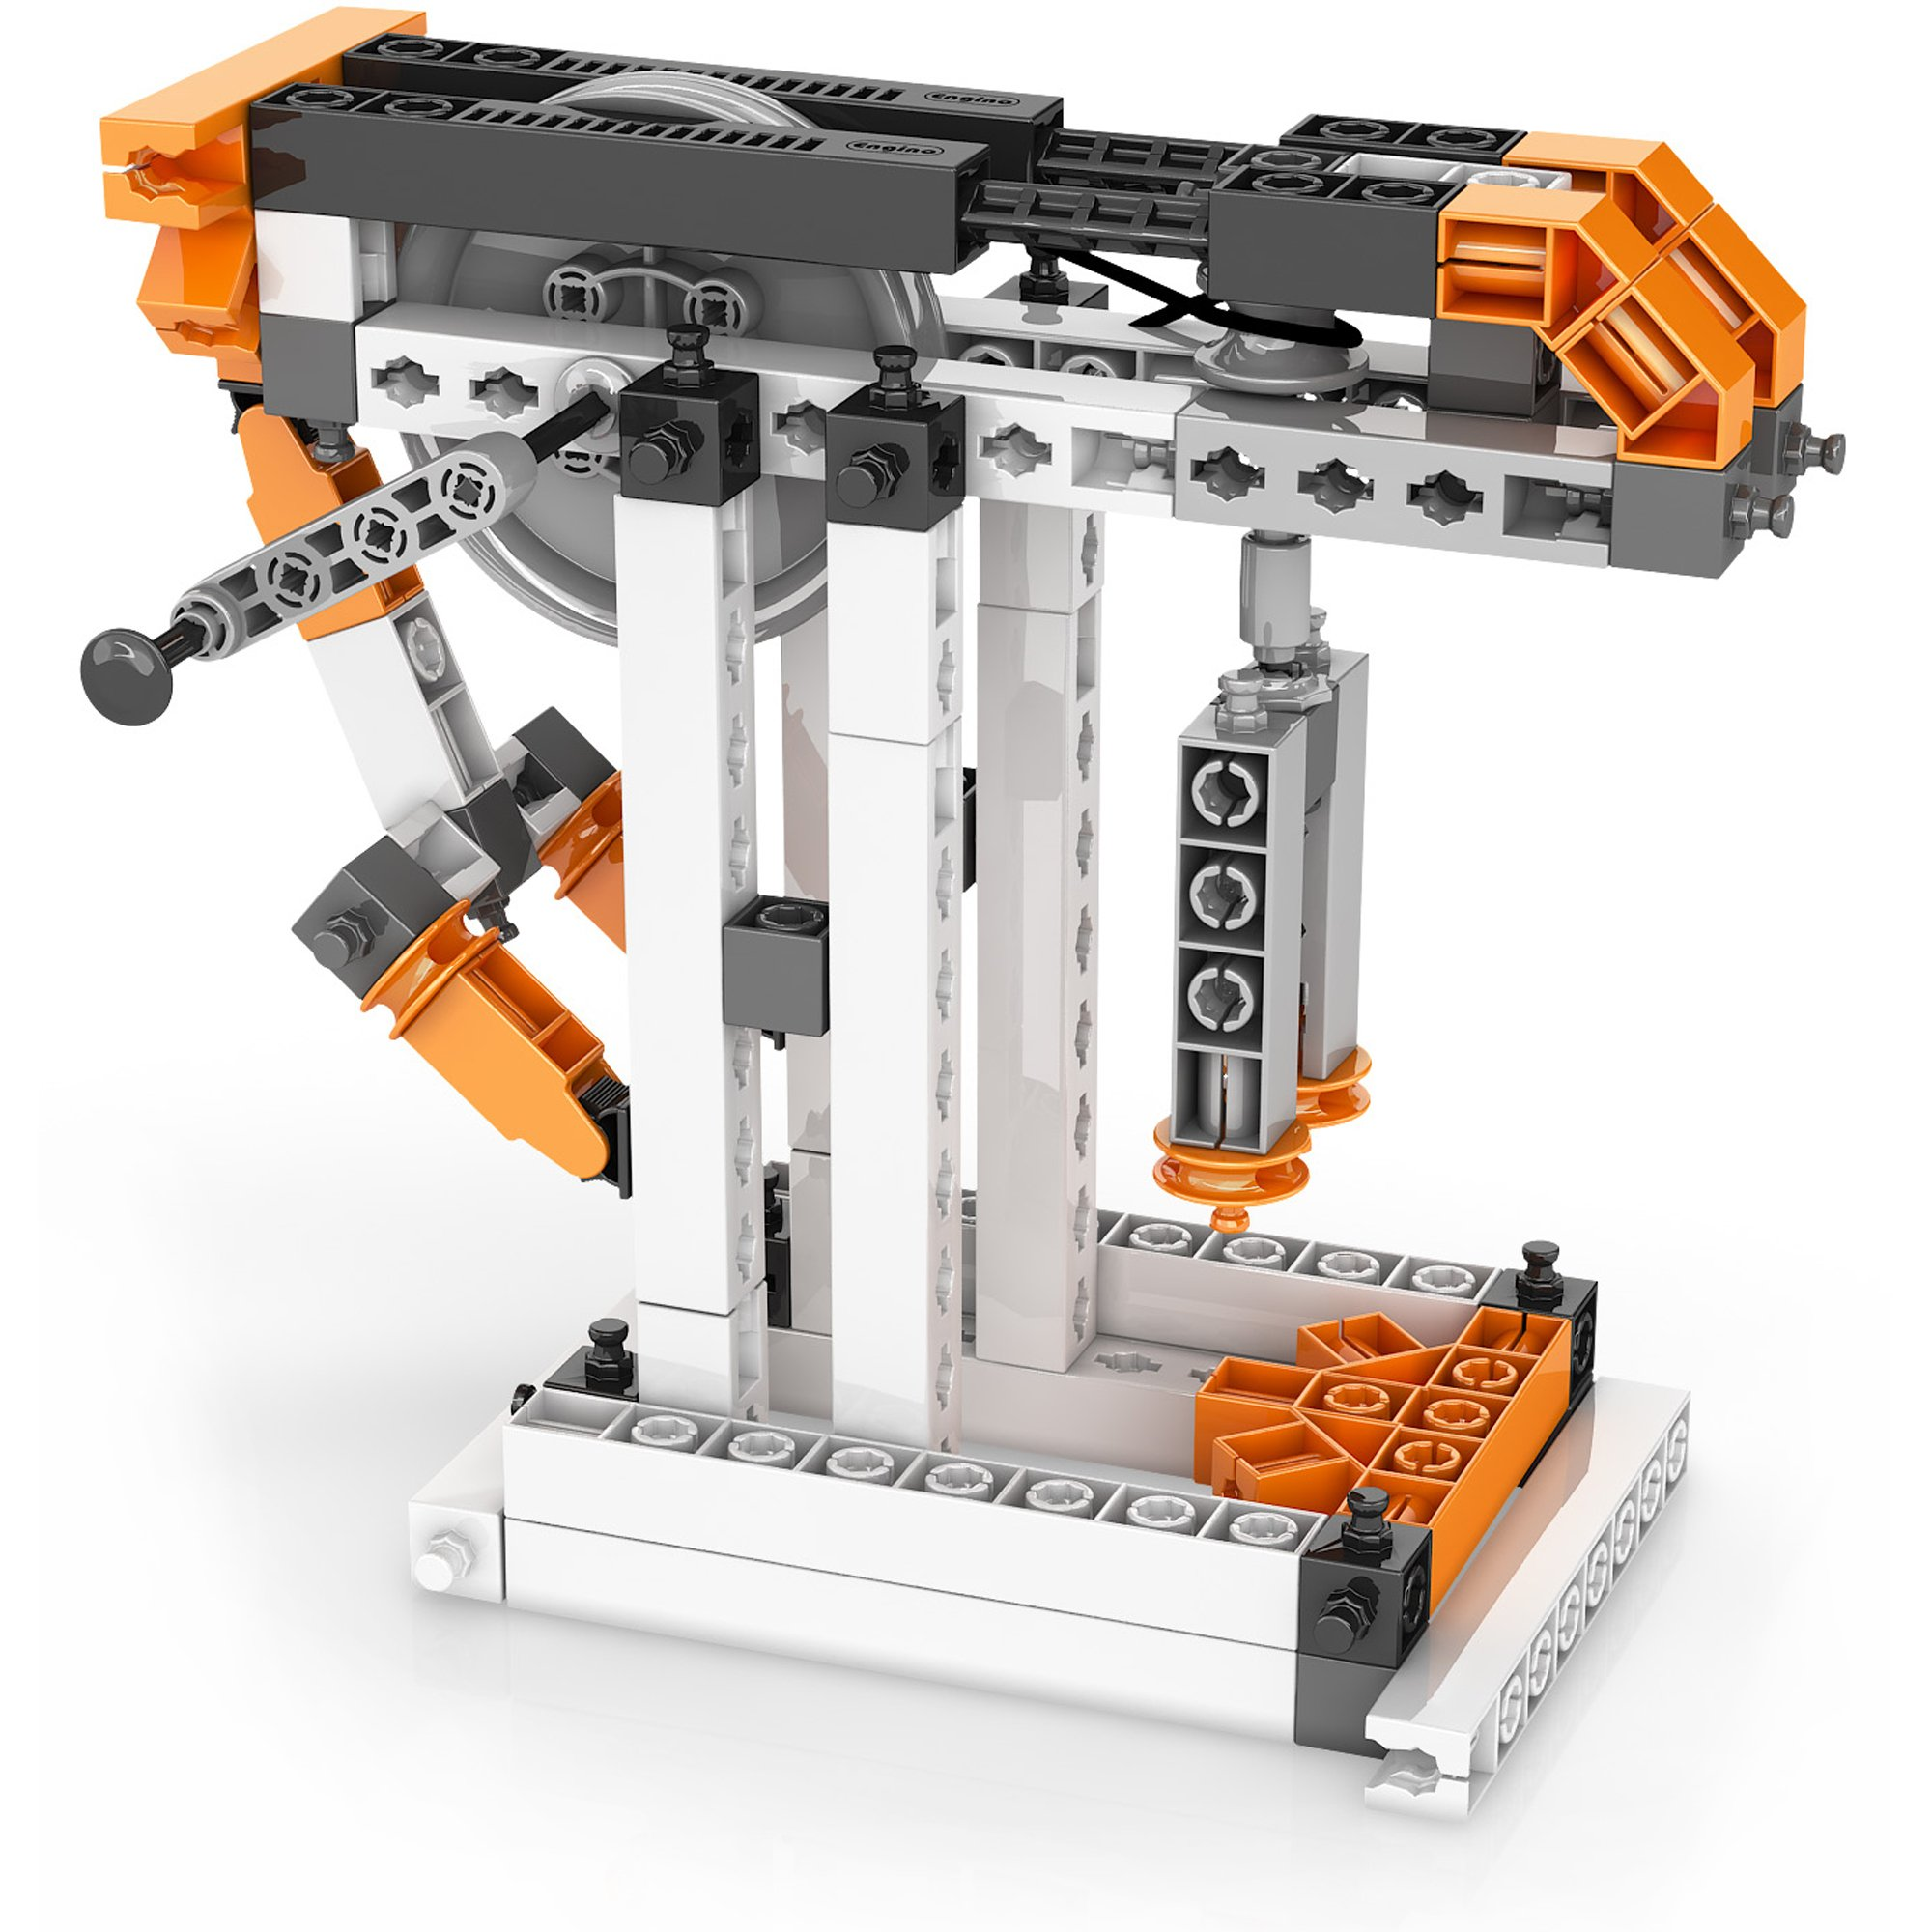 Engino Discovering STEM Simple Machines Mechanisms That Multiply Force Construction Kit by Engino (Image #3)